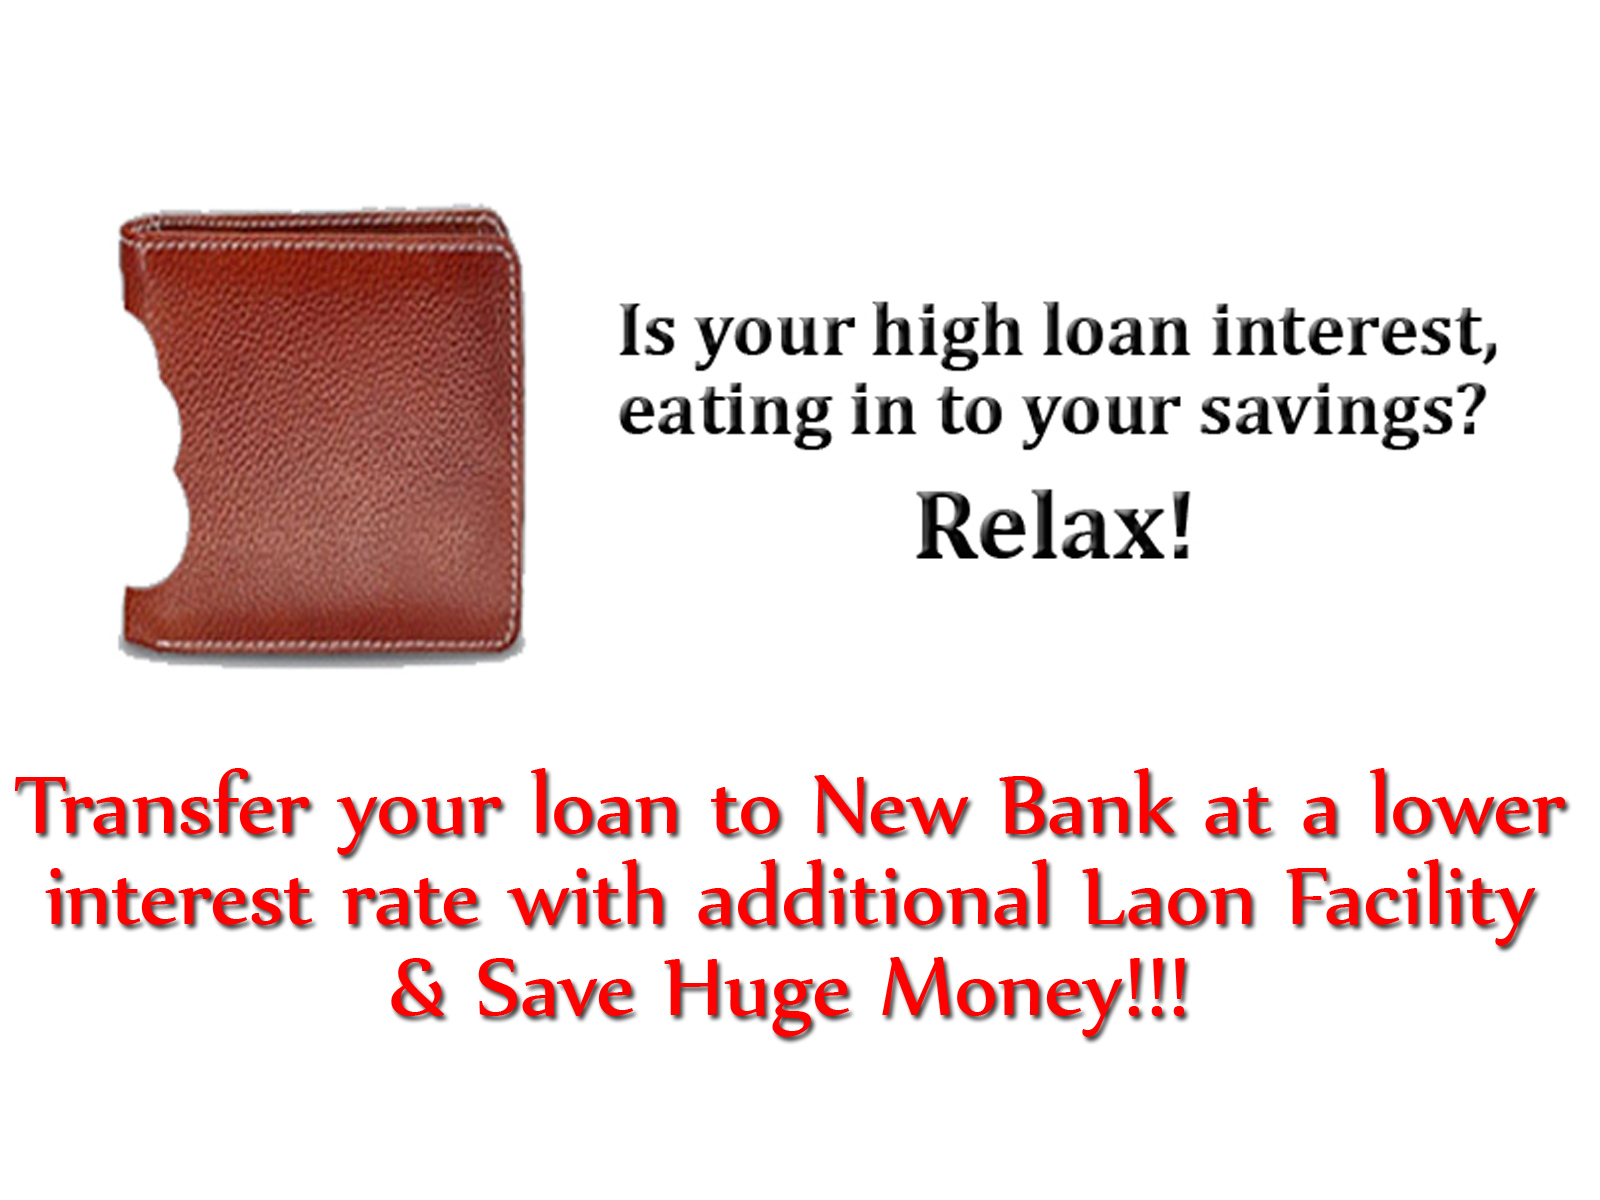 Car loan interest rate payment calculator hdfc 2014 emily 3